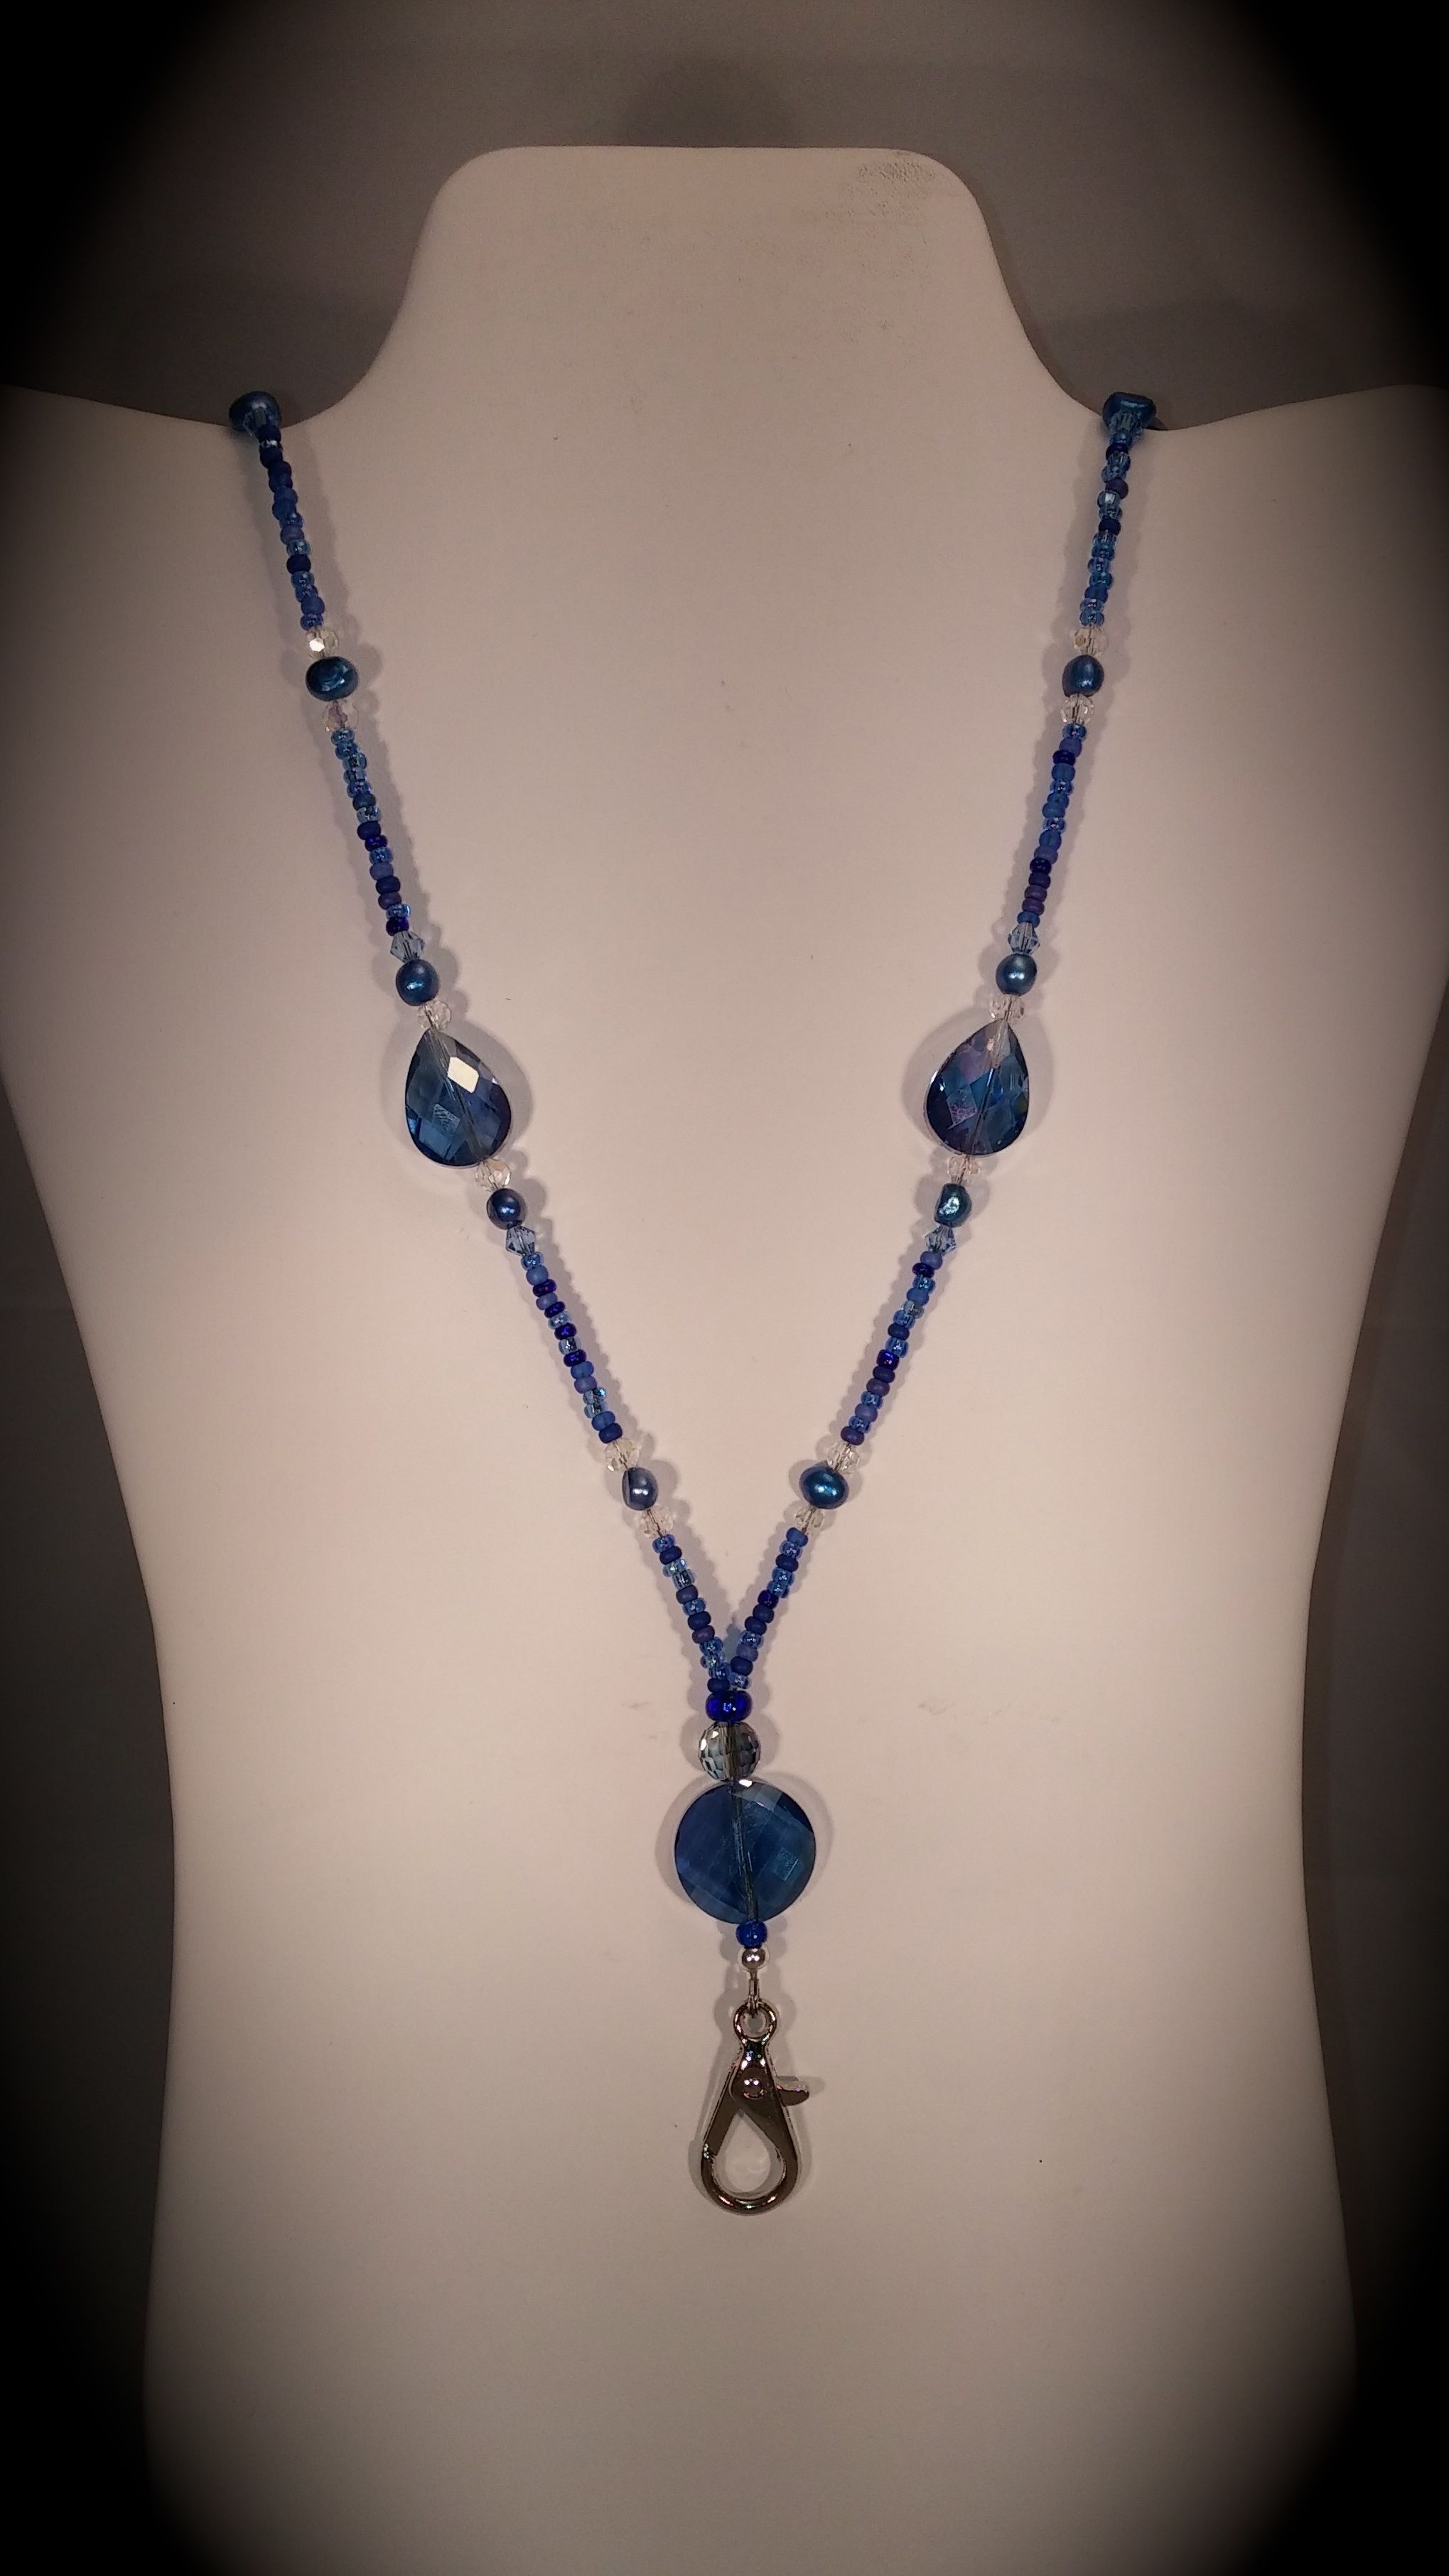 Buy A Custom Brilliant Blue Beaded Lanyard With Magnetic